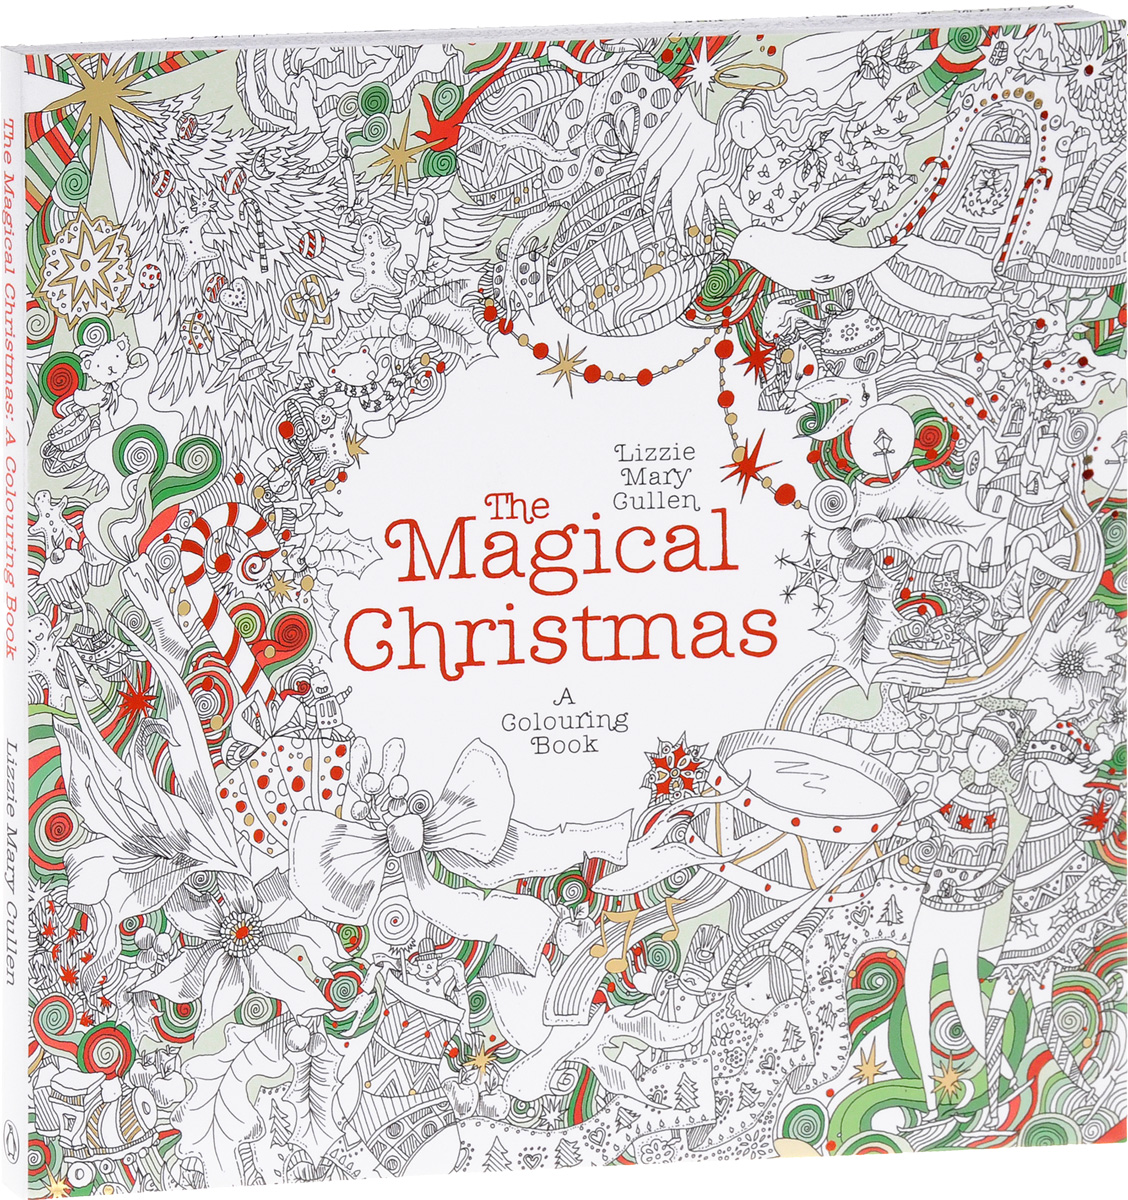 The Magical Christmas: A Colouring Book die hard the official colouring book